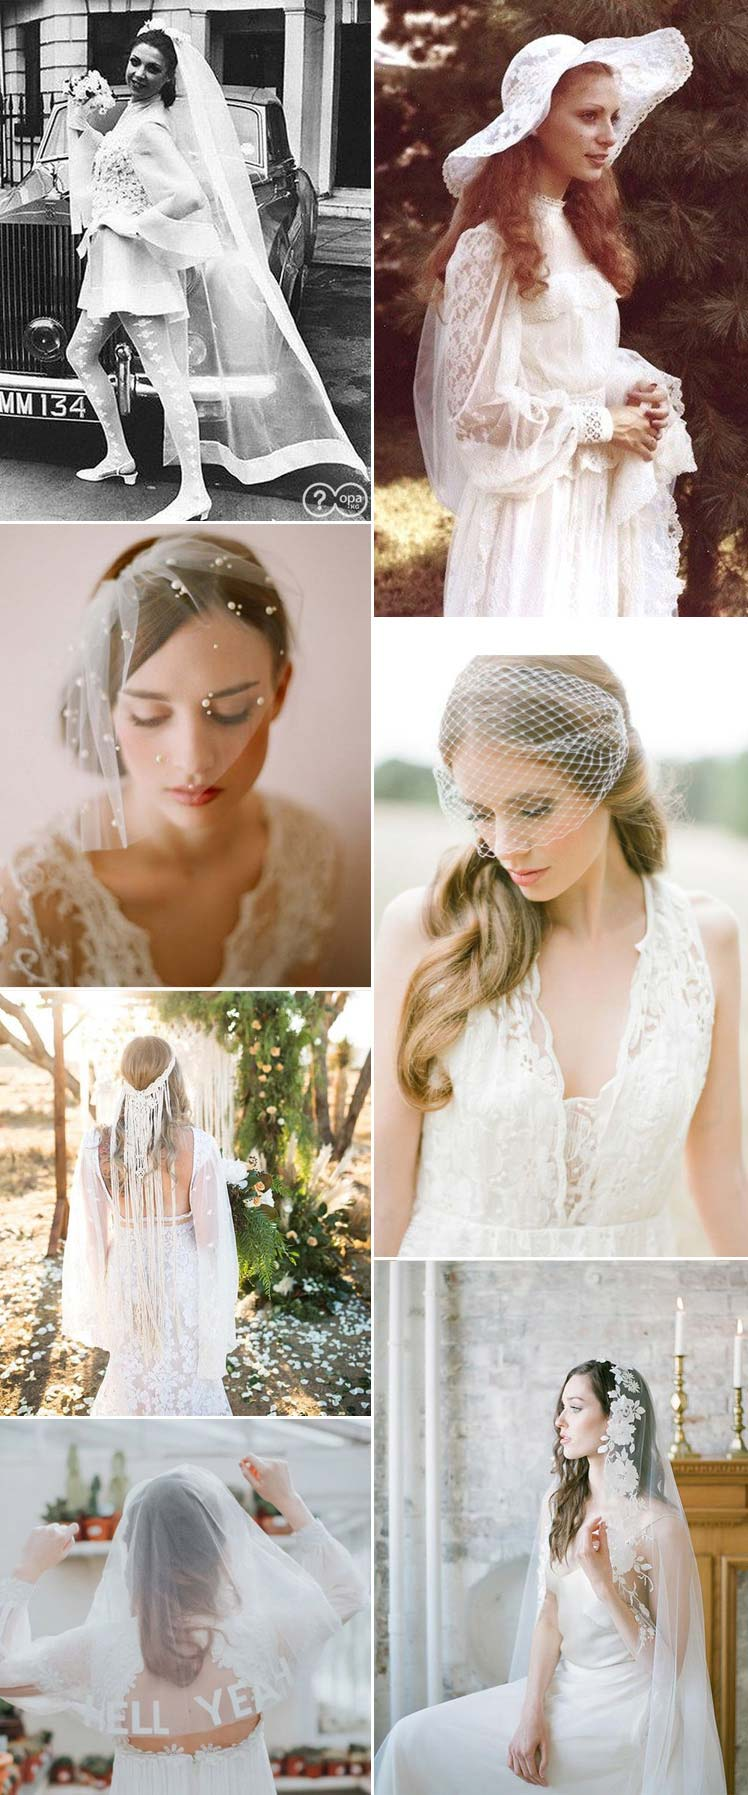 Vintage wedding veils through the decades